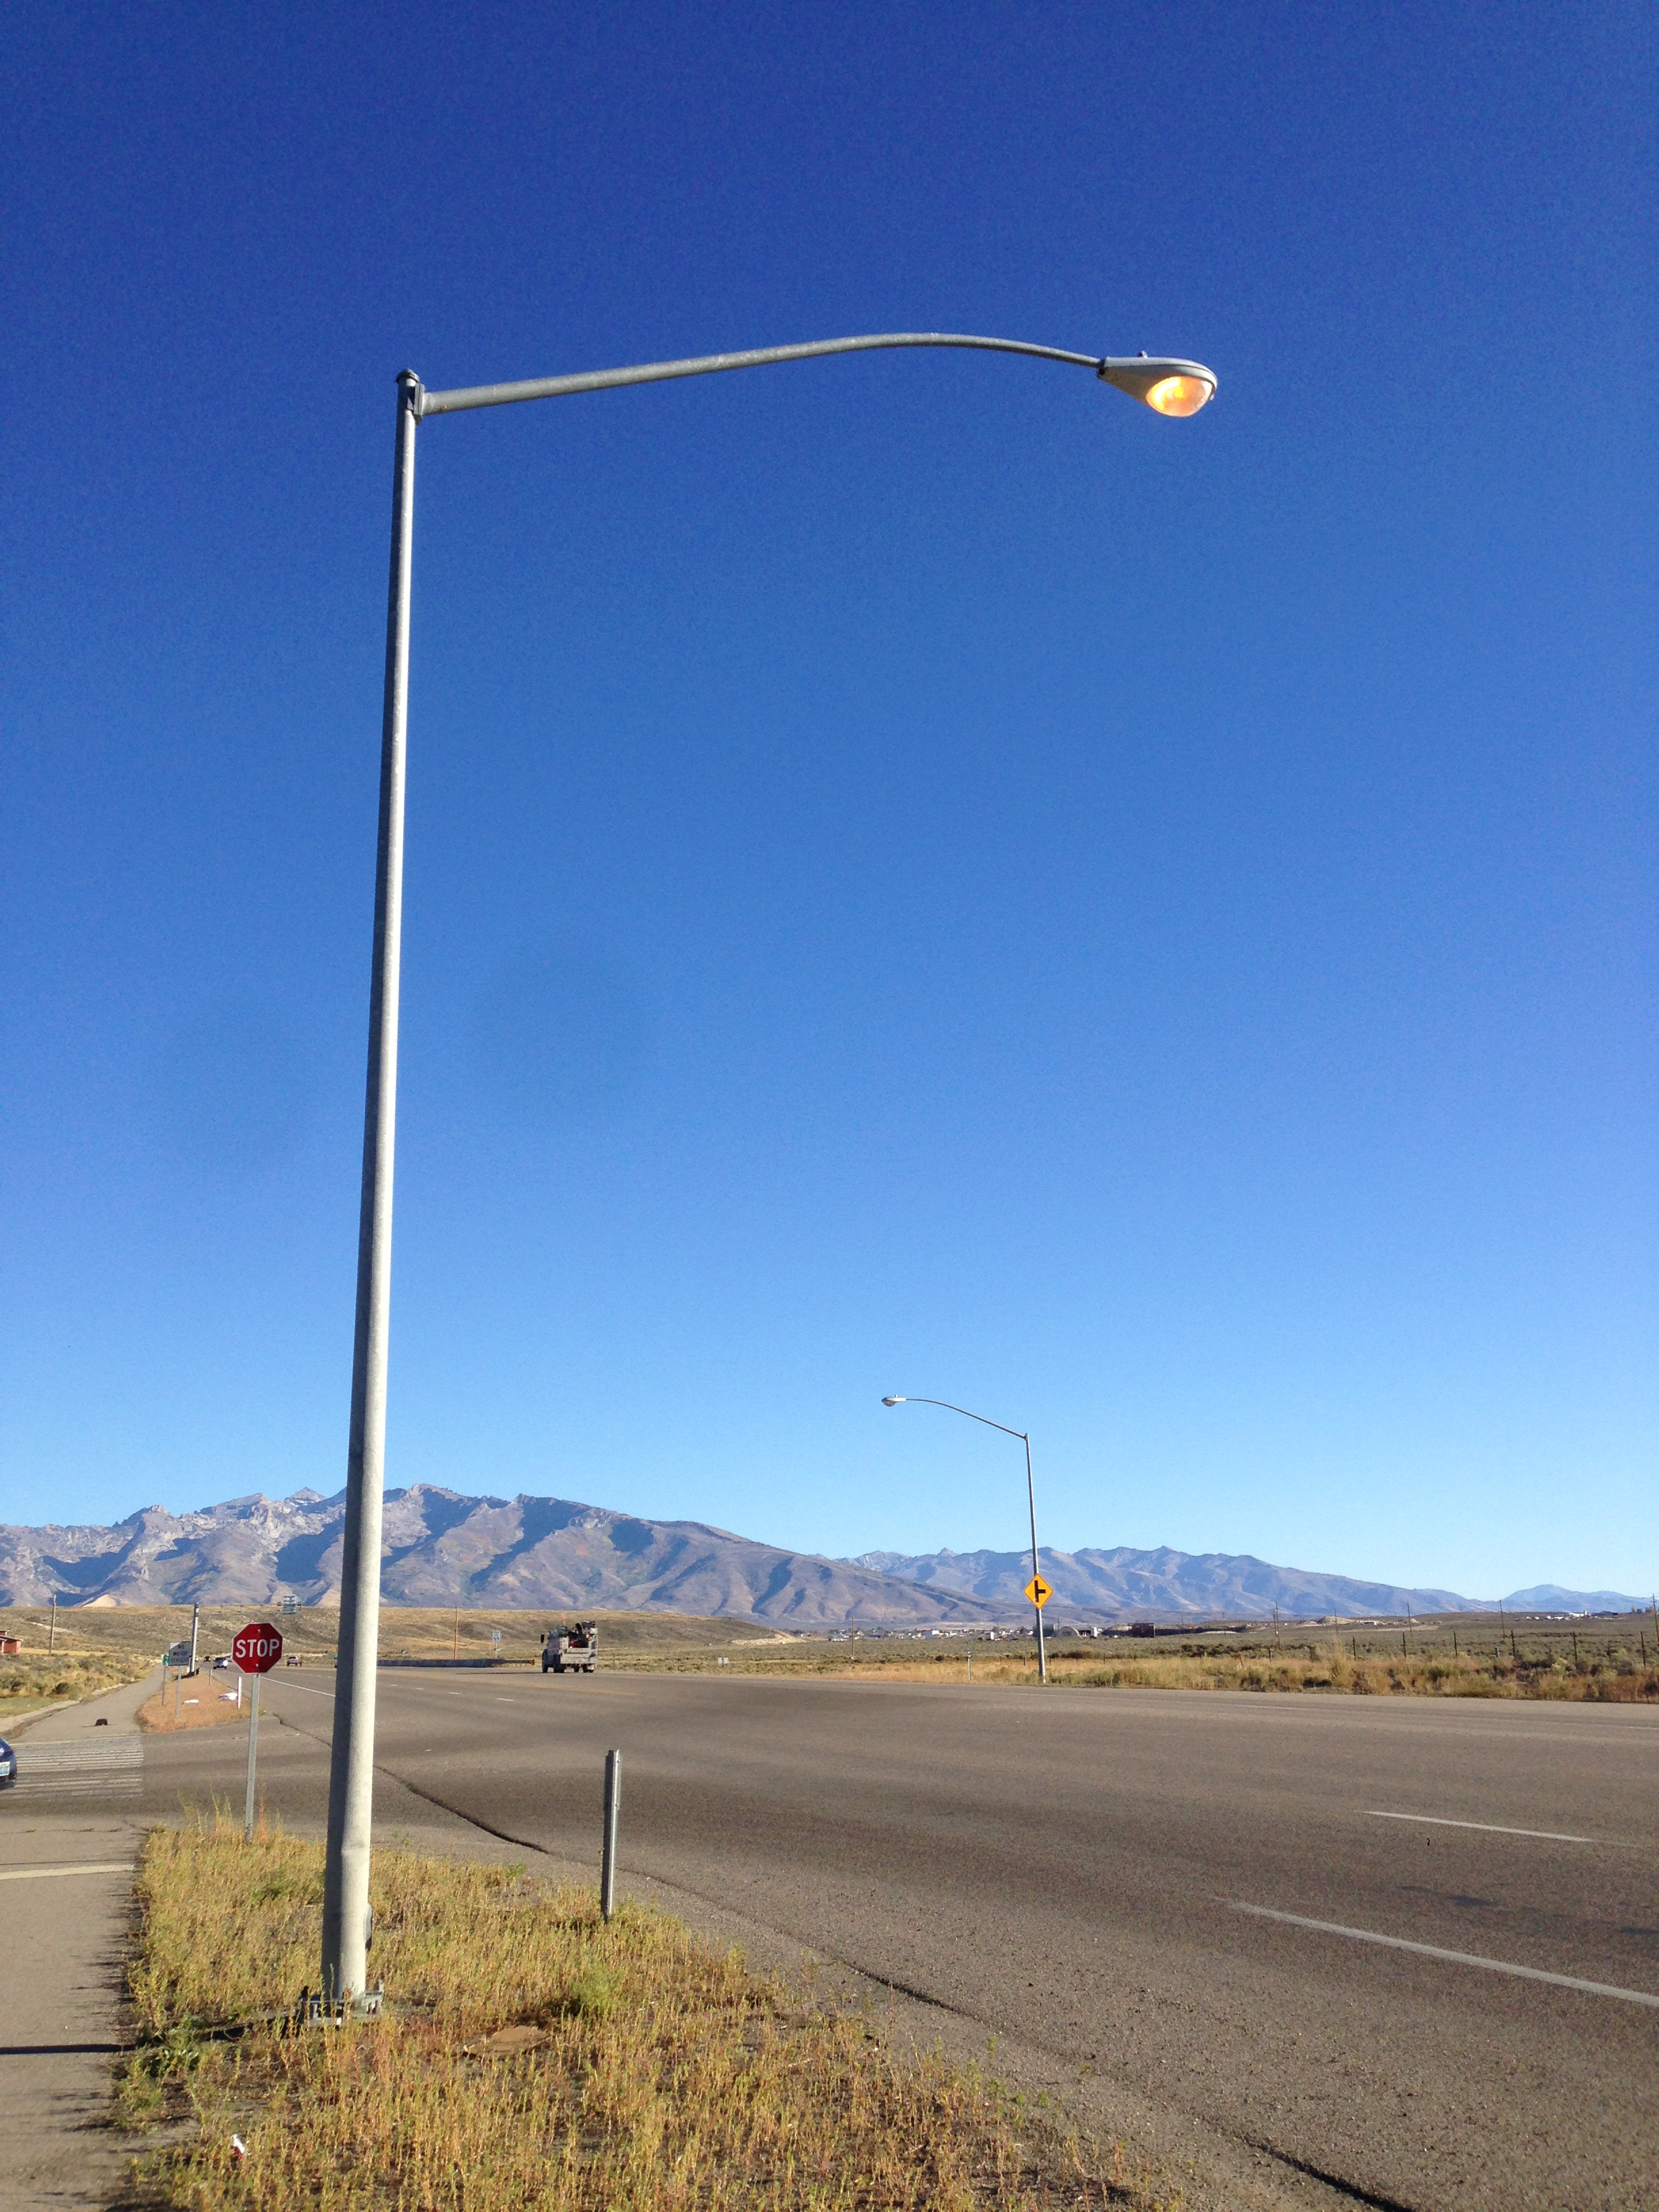 File 2014 10 05 16 14 16 Street Light Illuminated During